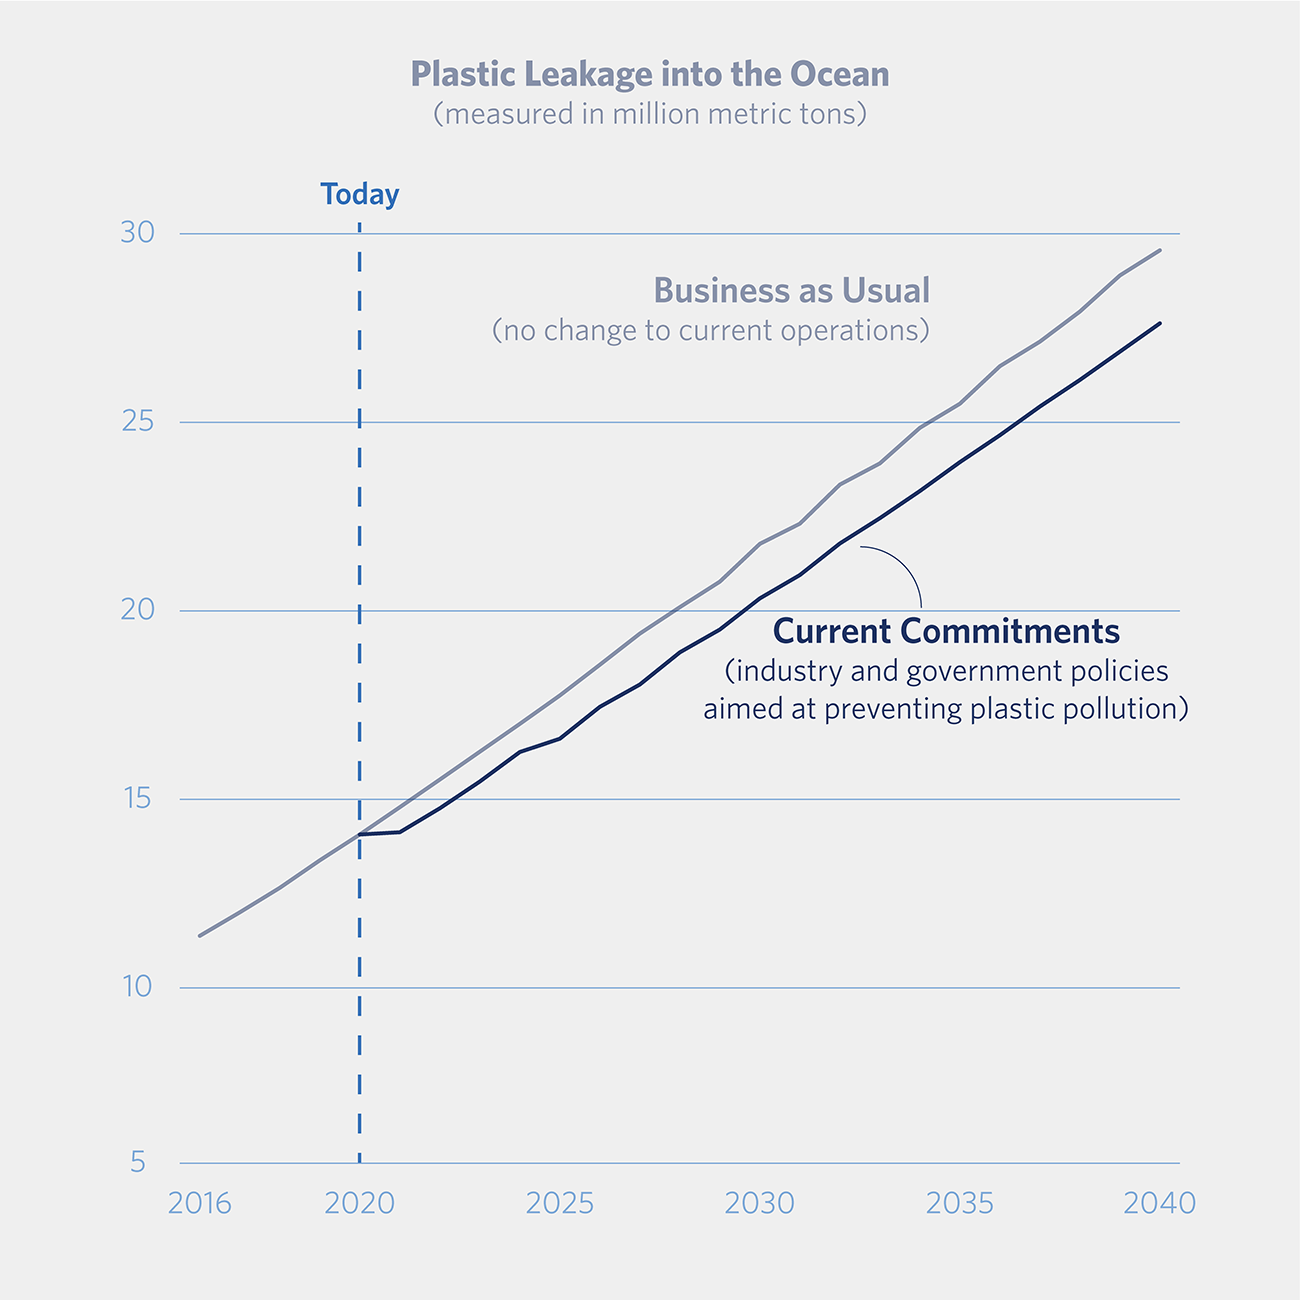 Line graph showing rate of plastic leakage into ocean from 2016-2040 in line with current industry and government commitments to reduce and a business as usual scenario.